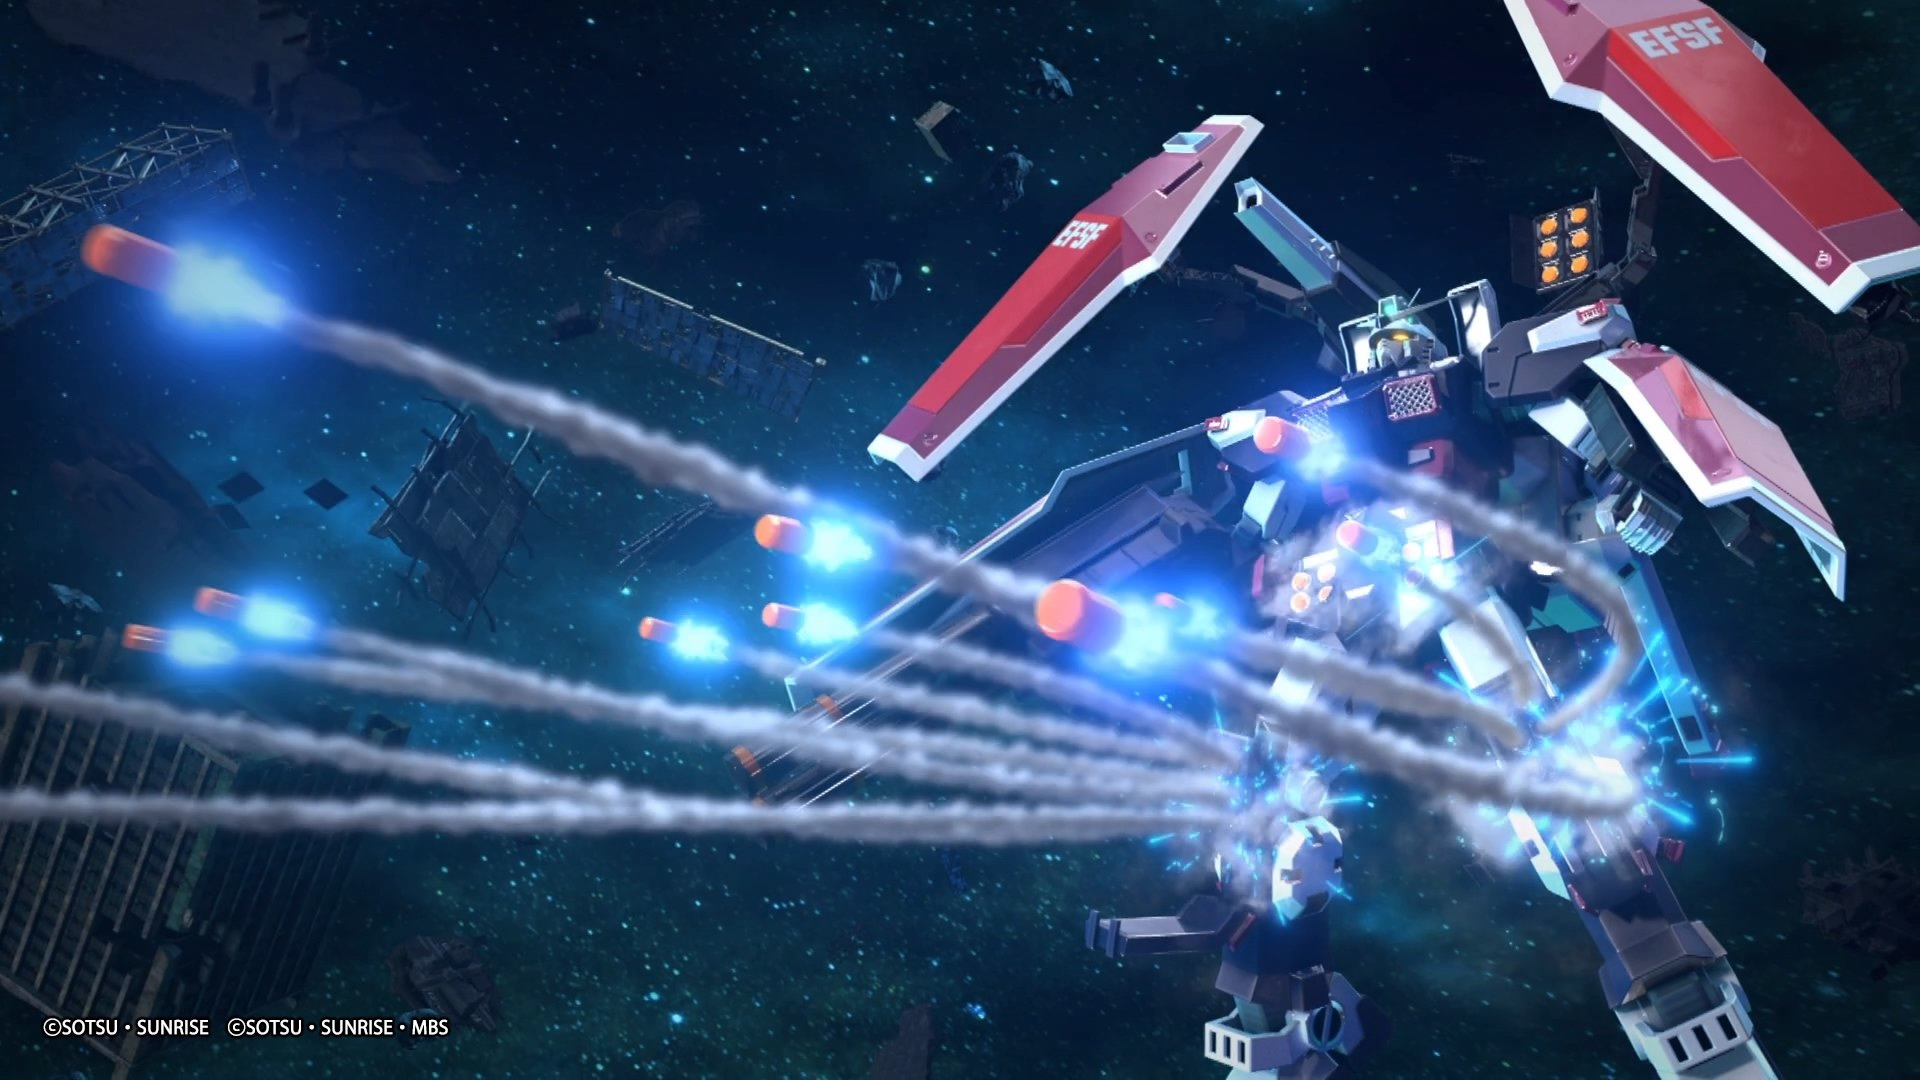 Mobile Suit Gundam Extreme Vs. Maxiboost On adds a new mode and a Wi-Fi indicator screenshot